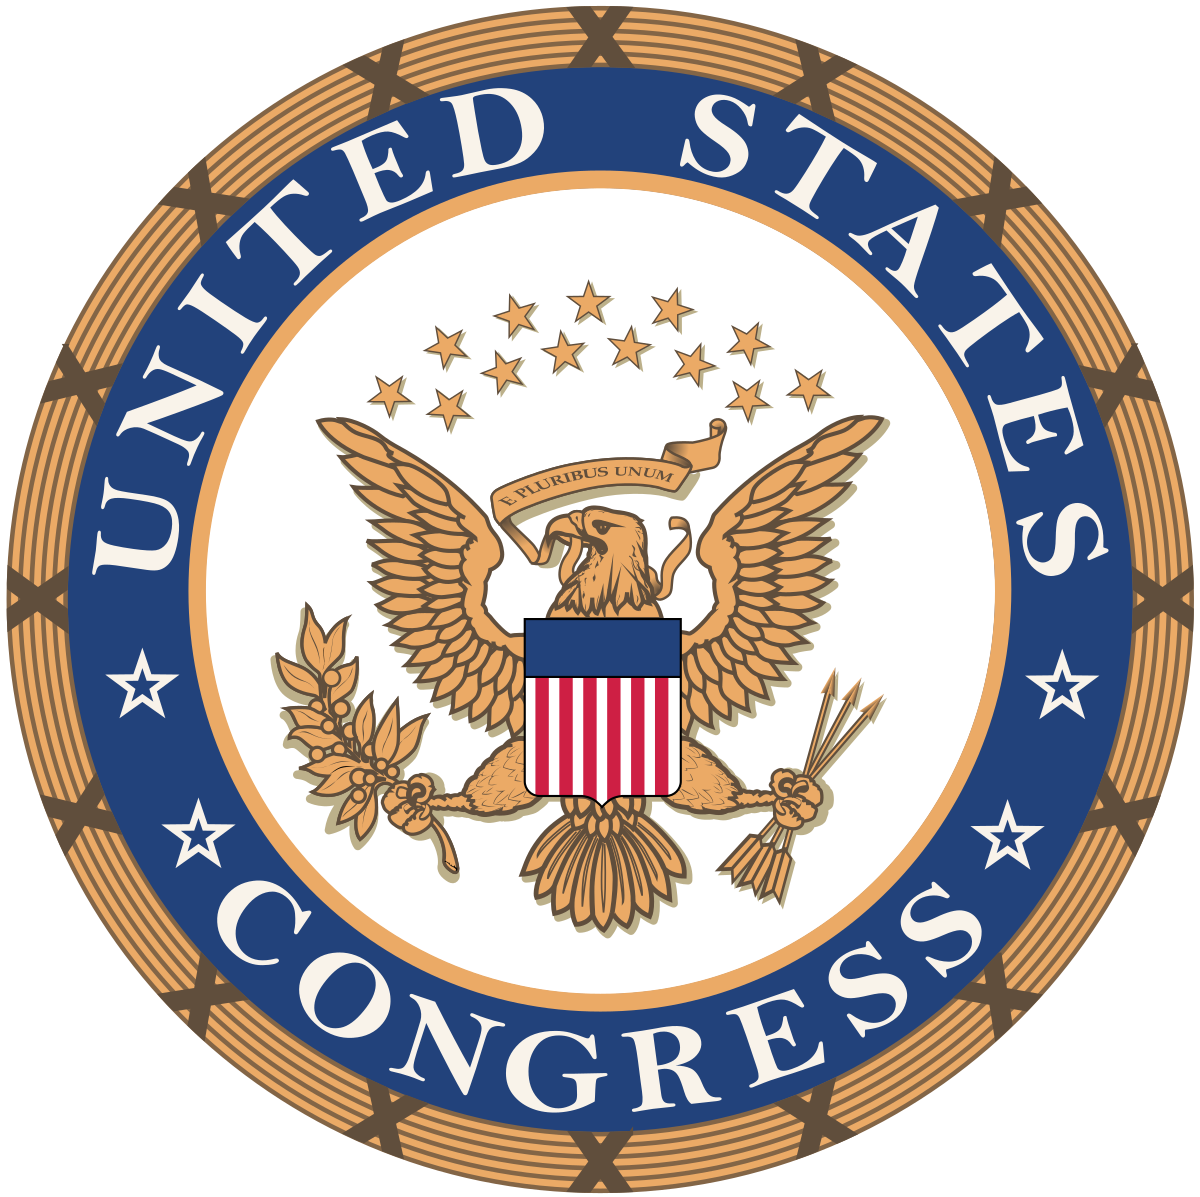 Conference clipart political meeting. United states congress wikipedia